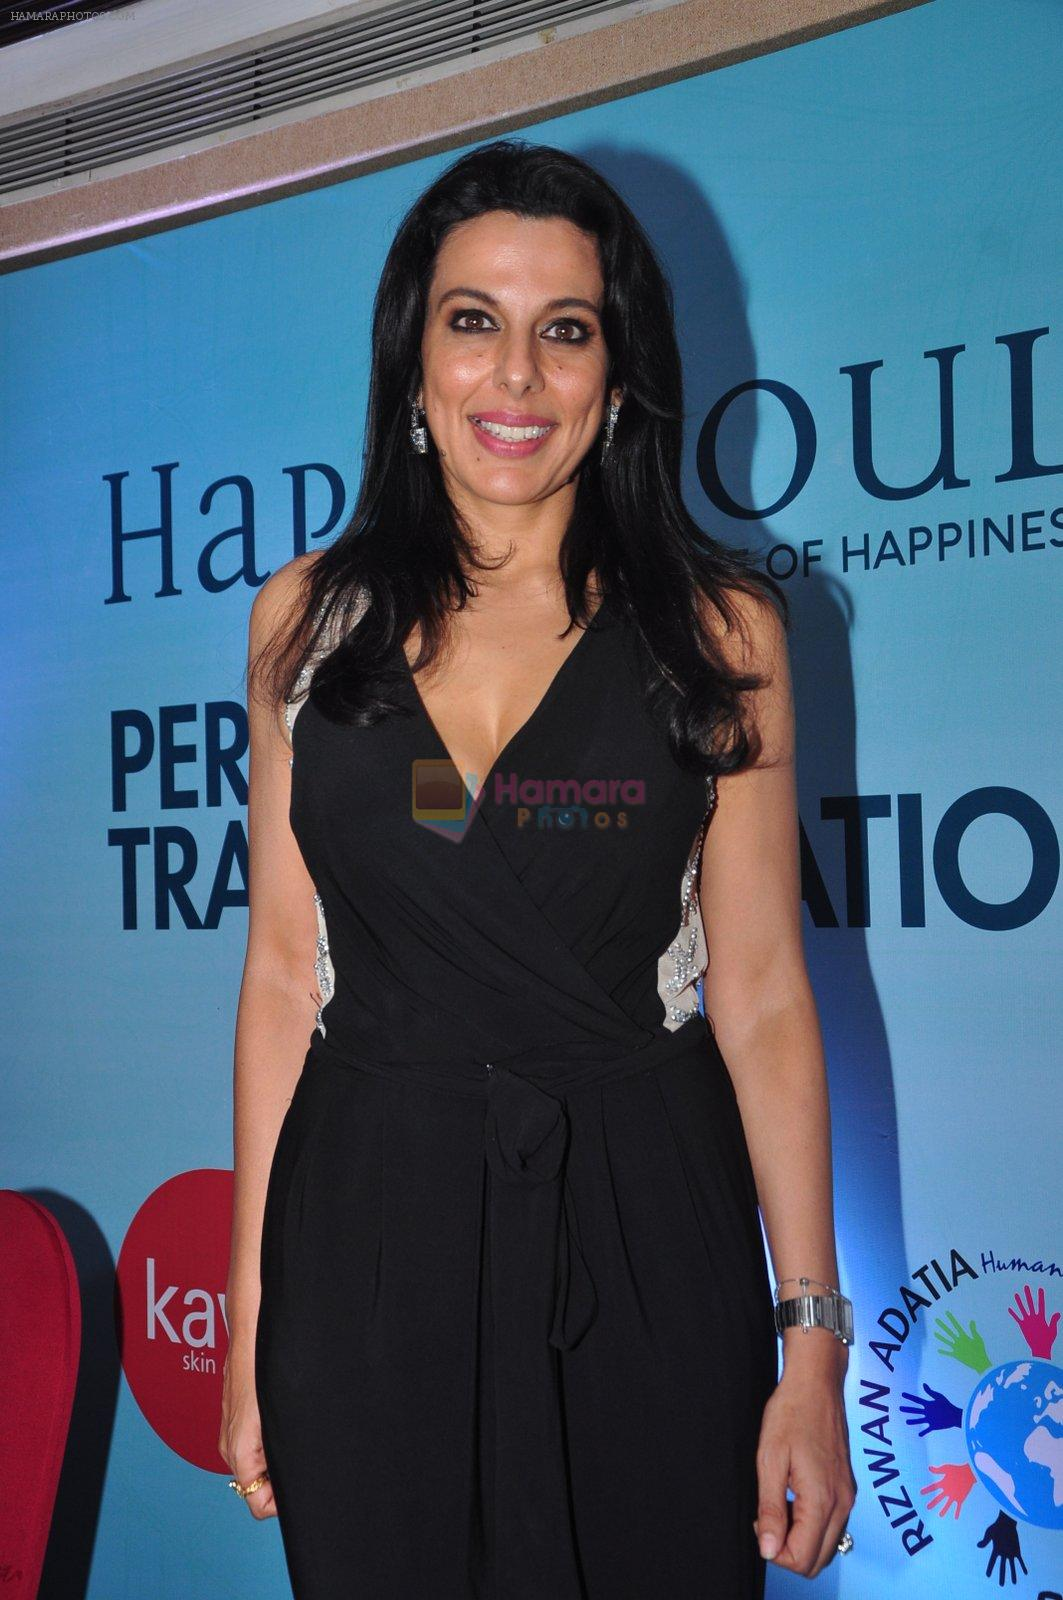 Pooja Bedi's new venture Happy Soul on 20th Aug 2016